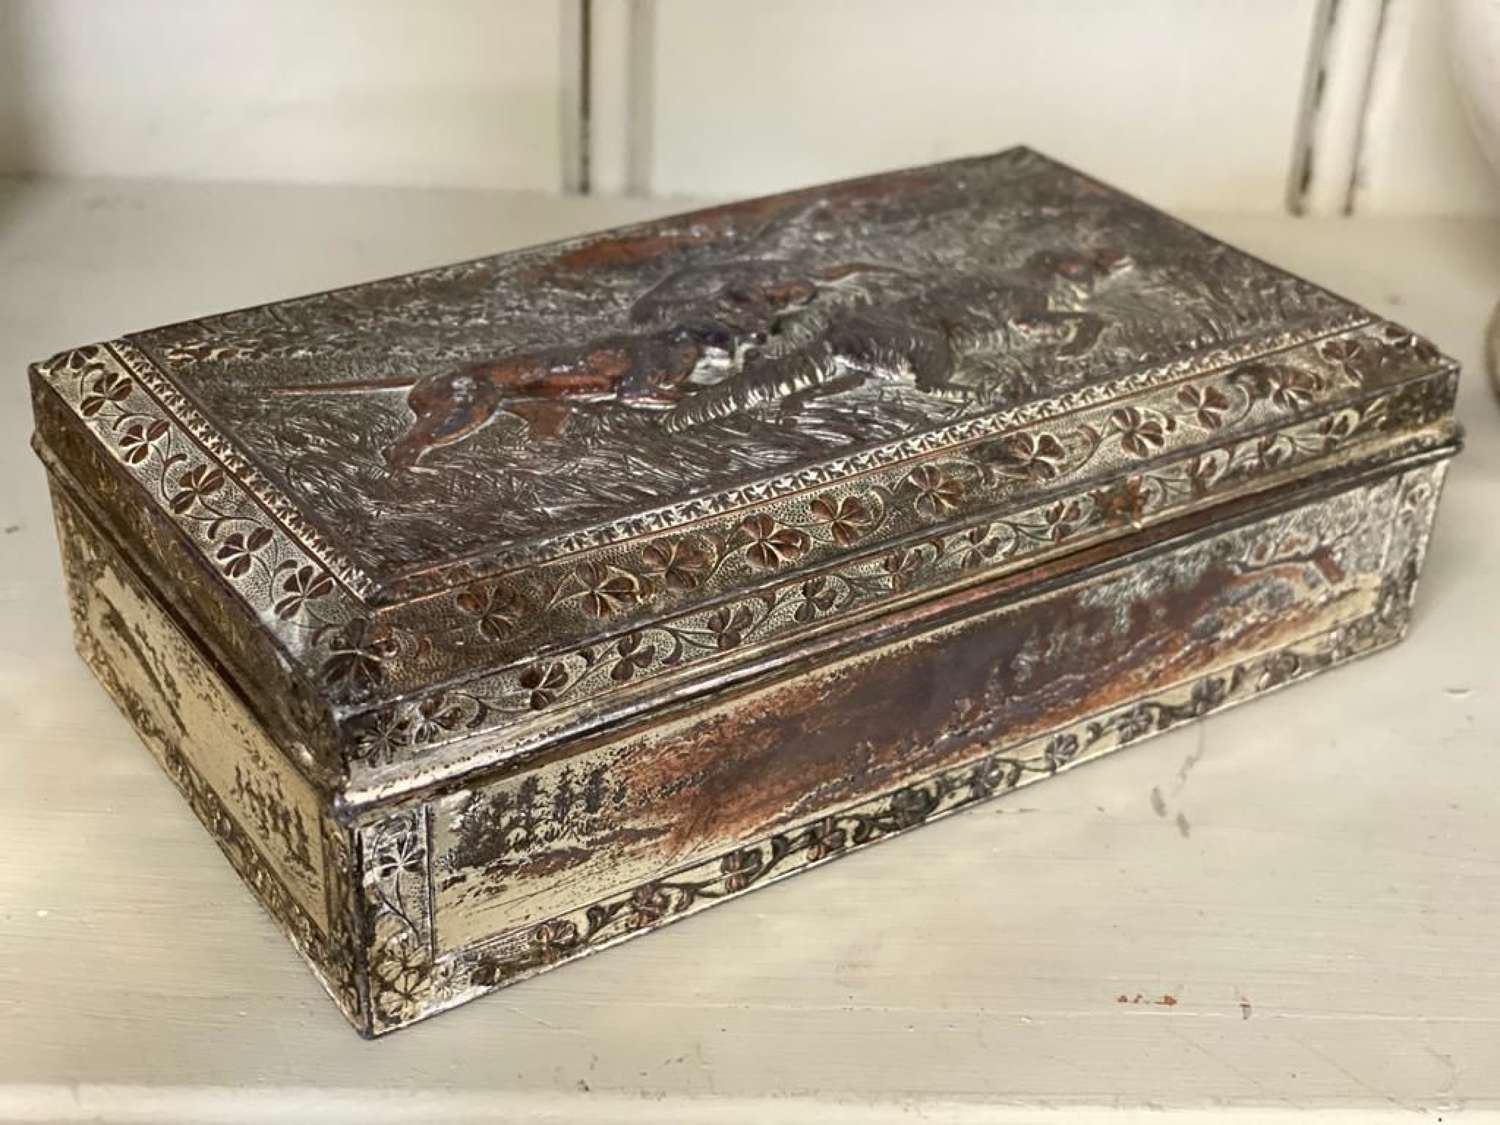 Cedar lined metal box with hounds